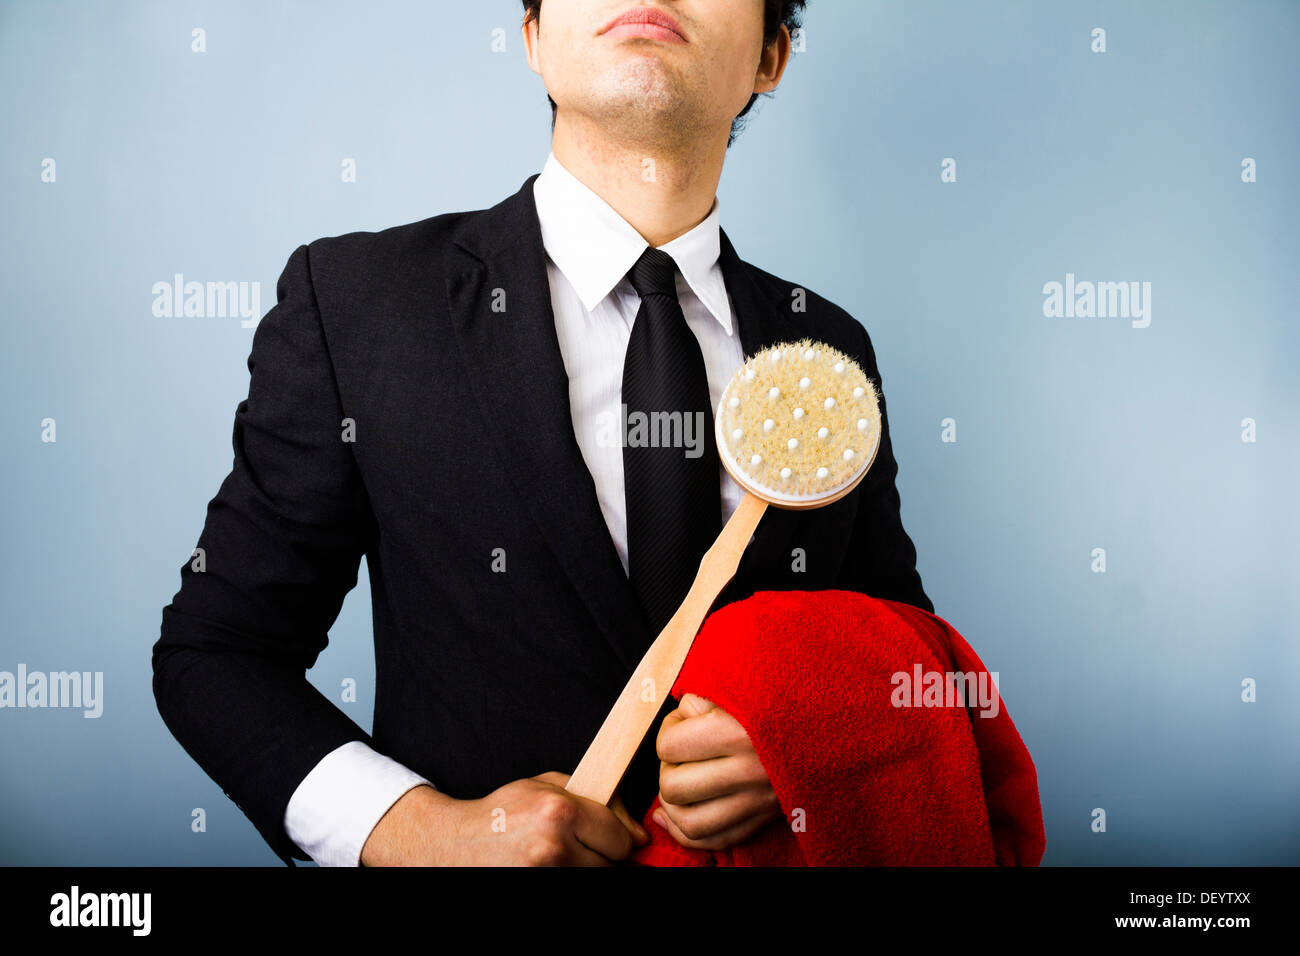 Young businessman with a red towel shower brush - Stock Image